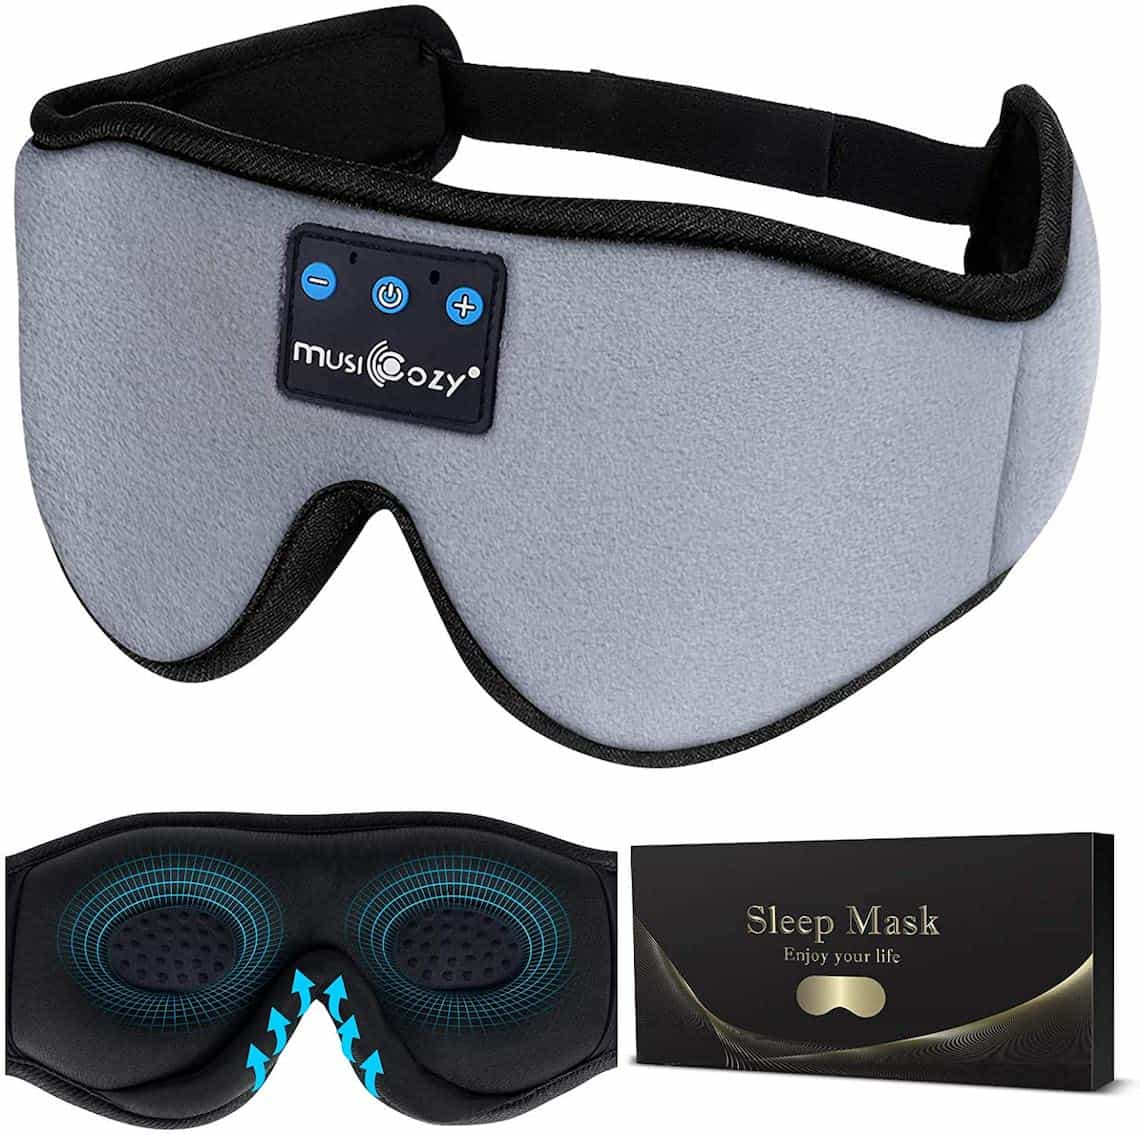 Tech Sleep Mask - a thoughtful mothers day gift for wife